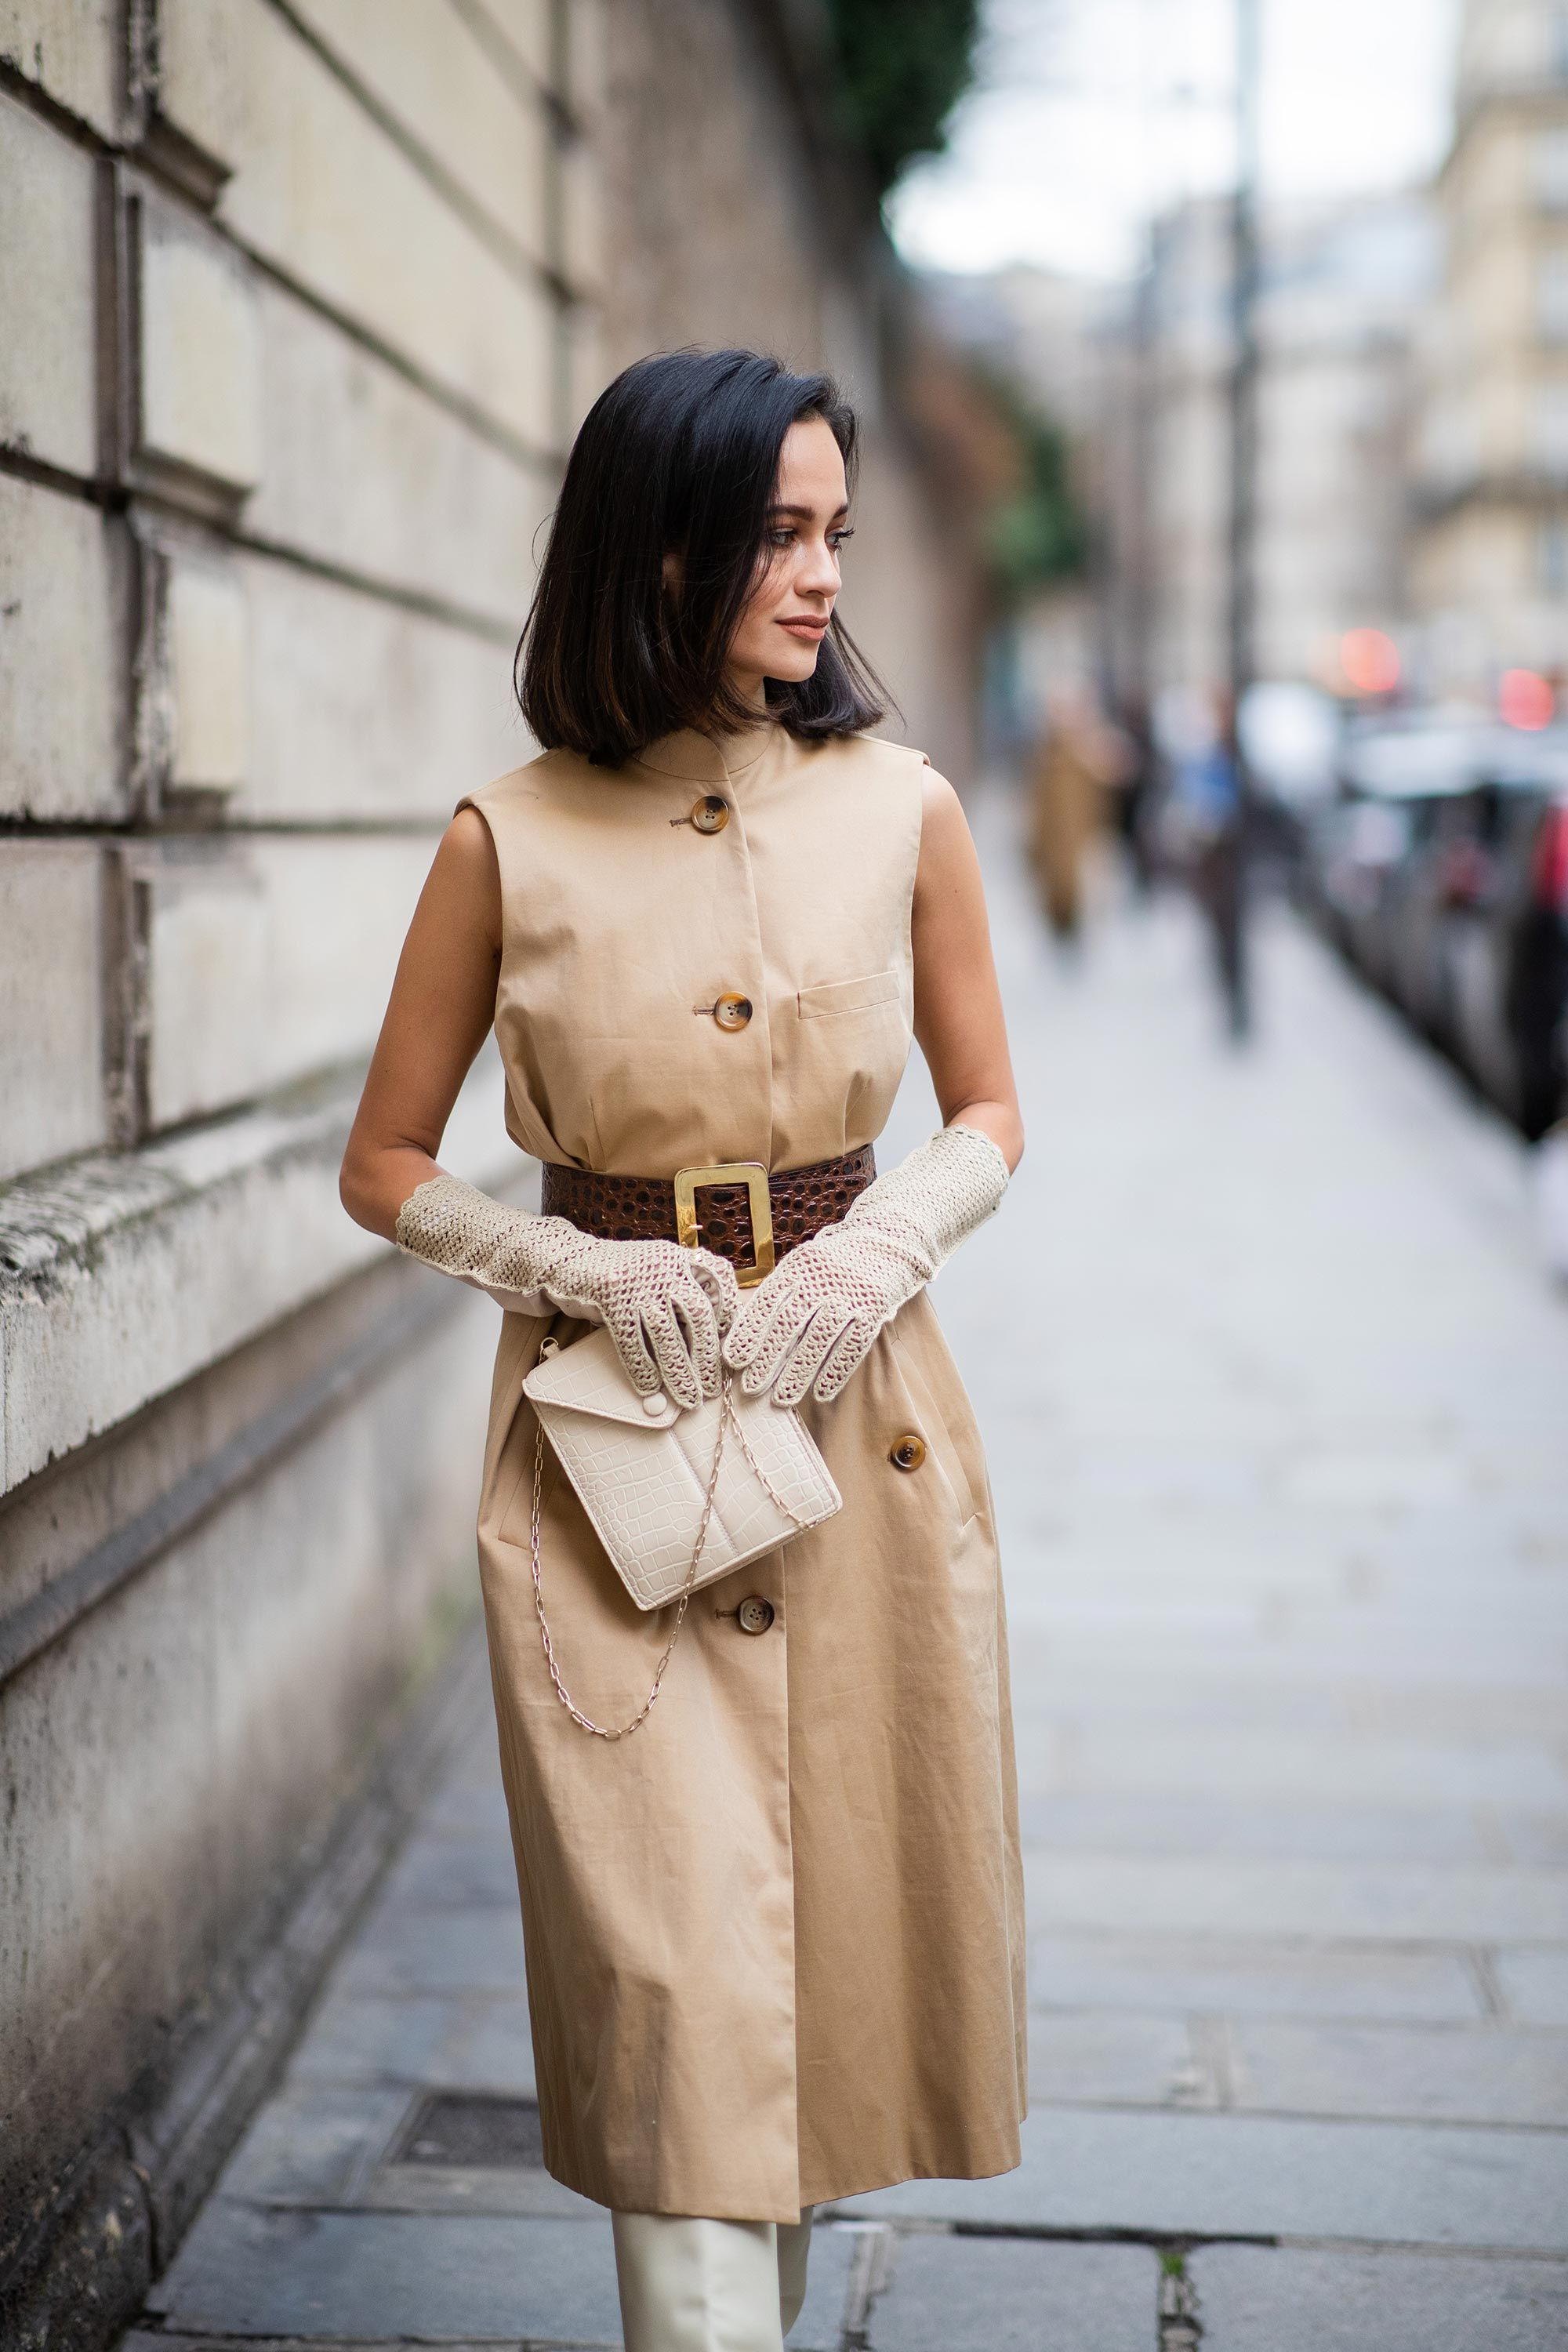 Beige fashion trend 2019 explained